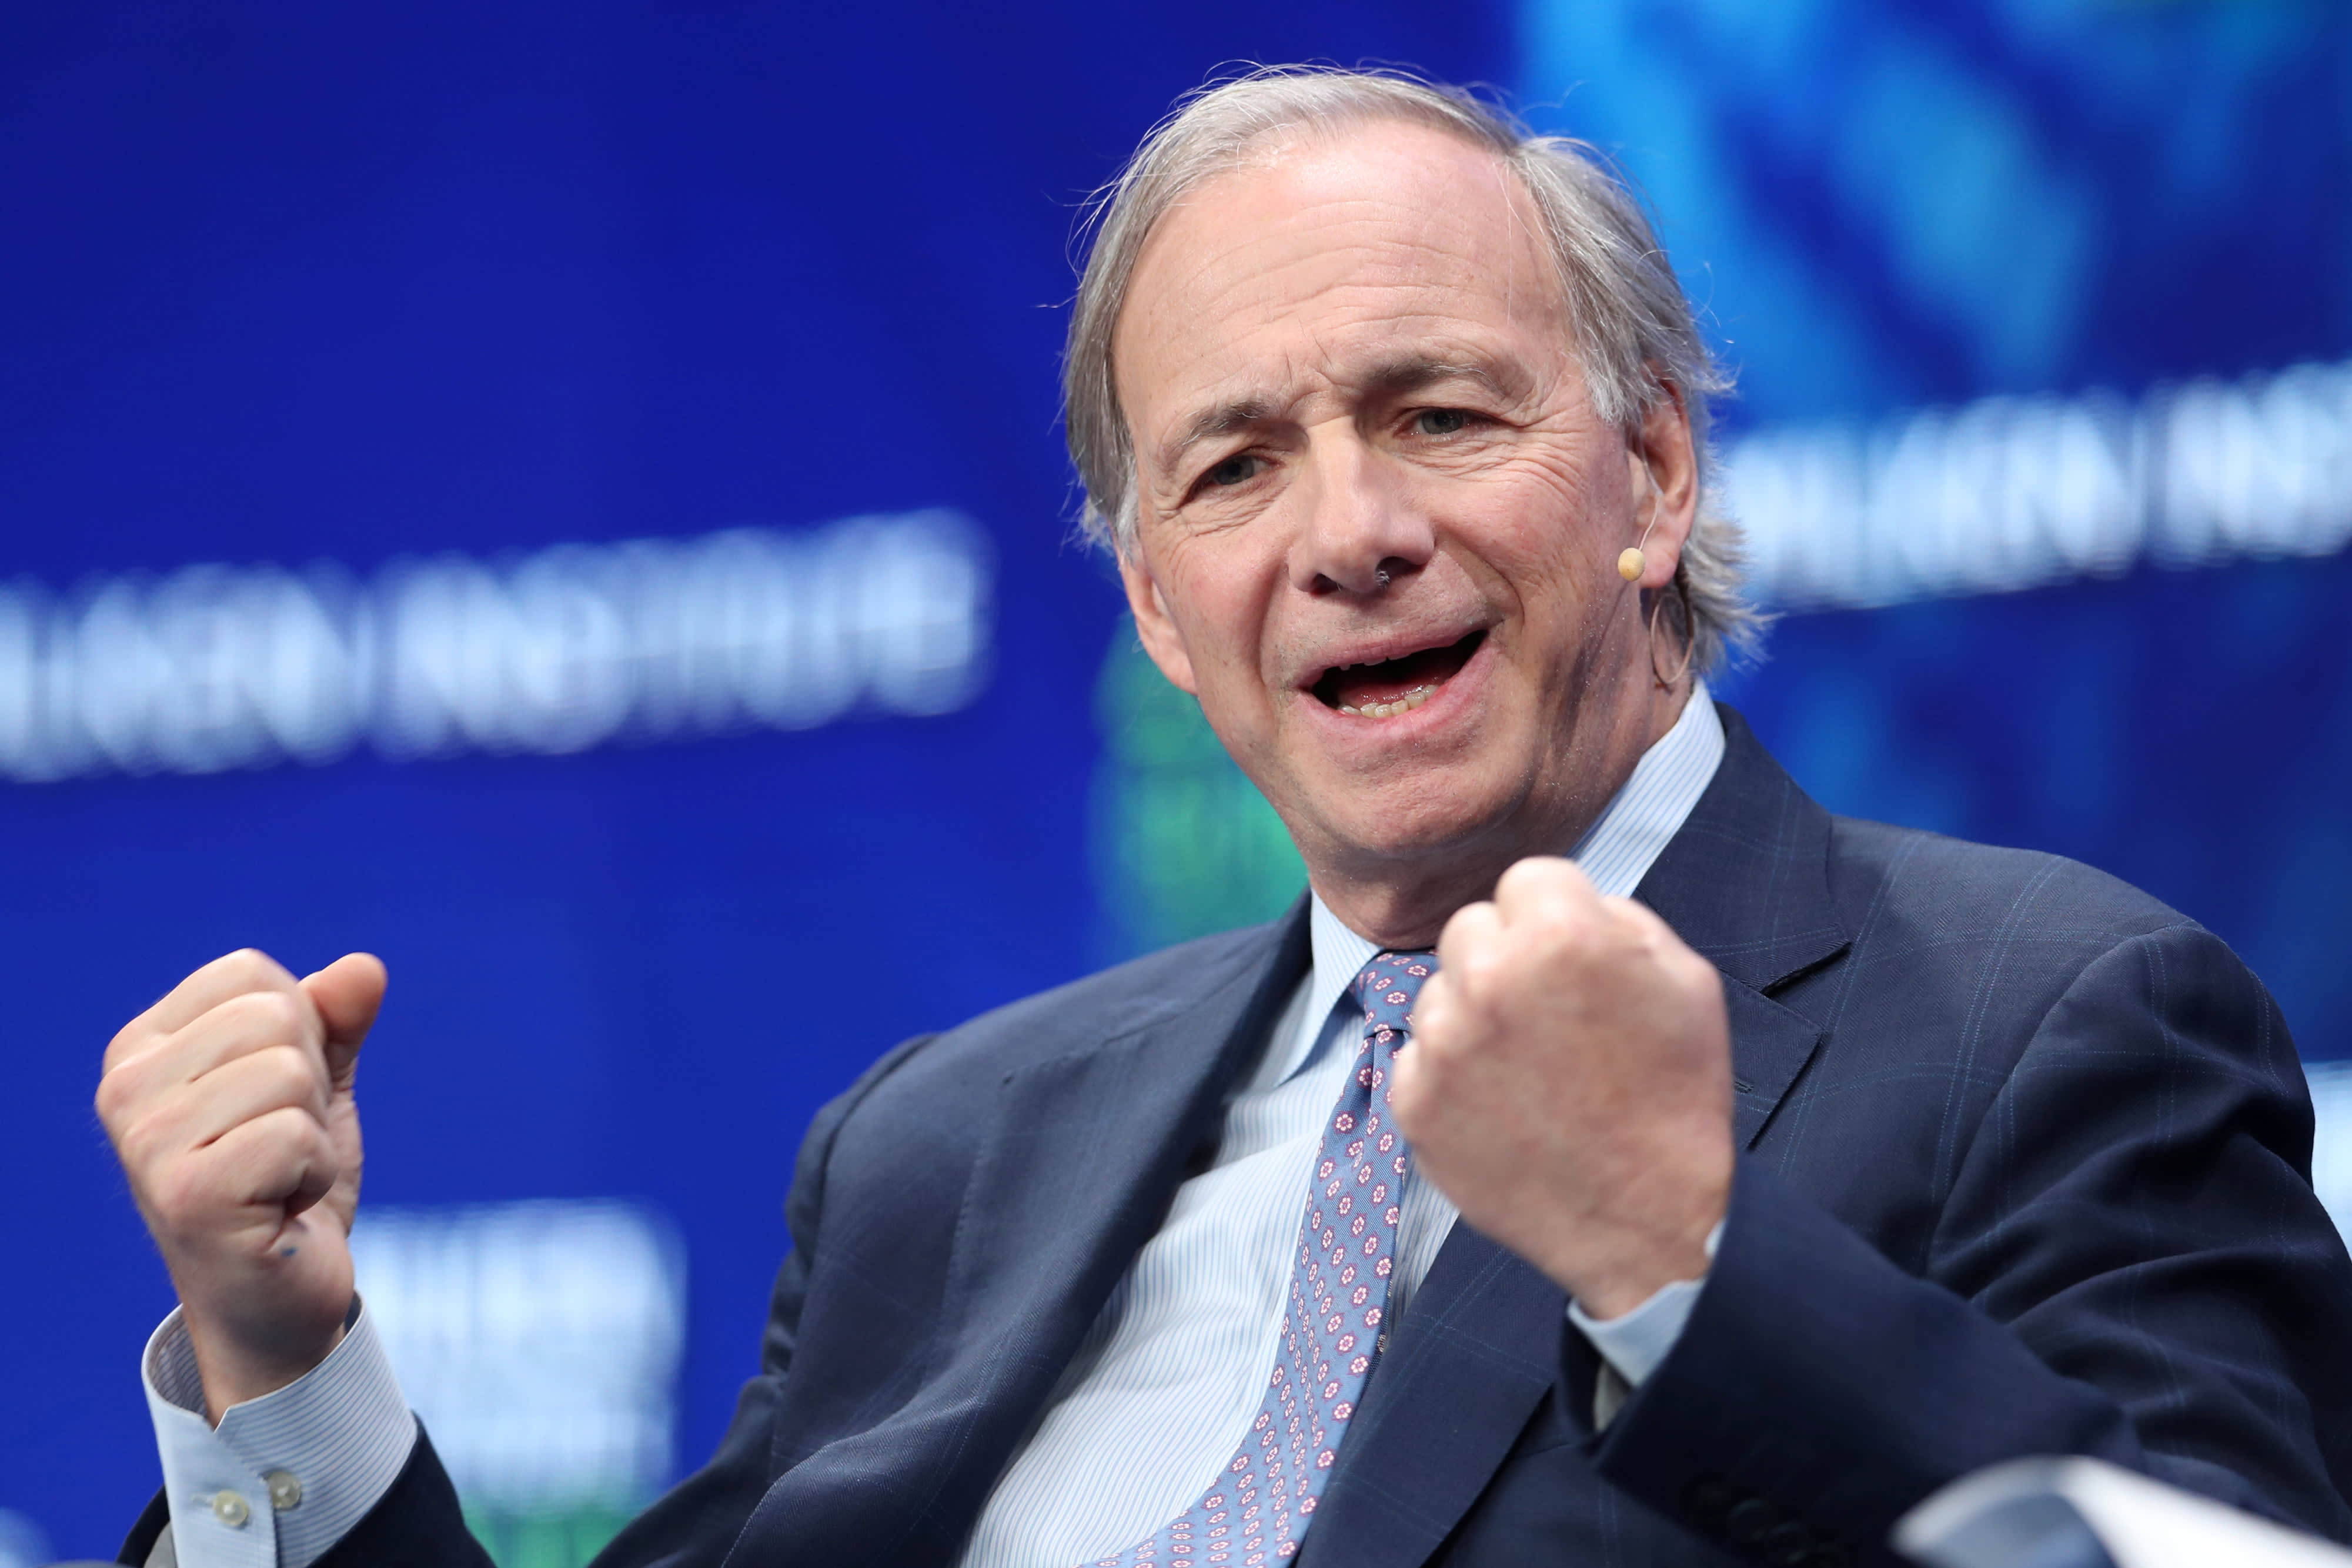 Ray Dalio says this tactic helped him go from 'hardly any money' to successful billionaire